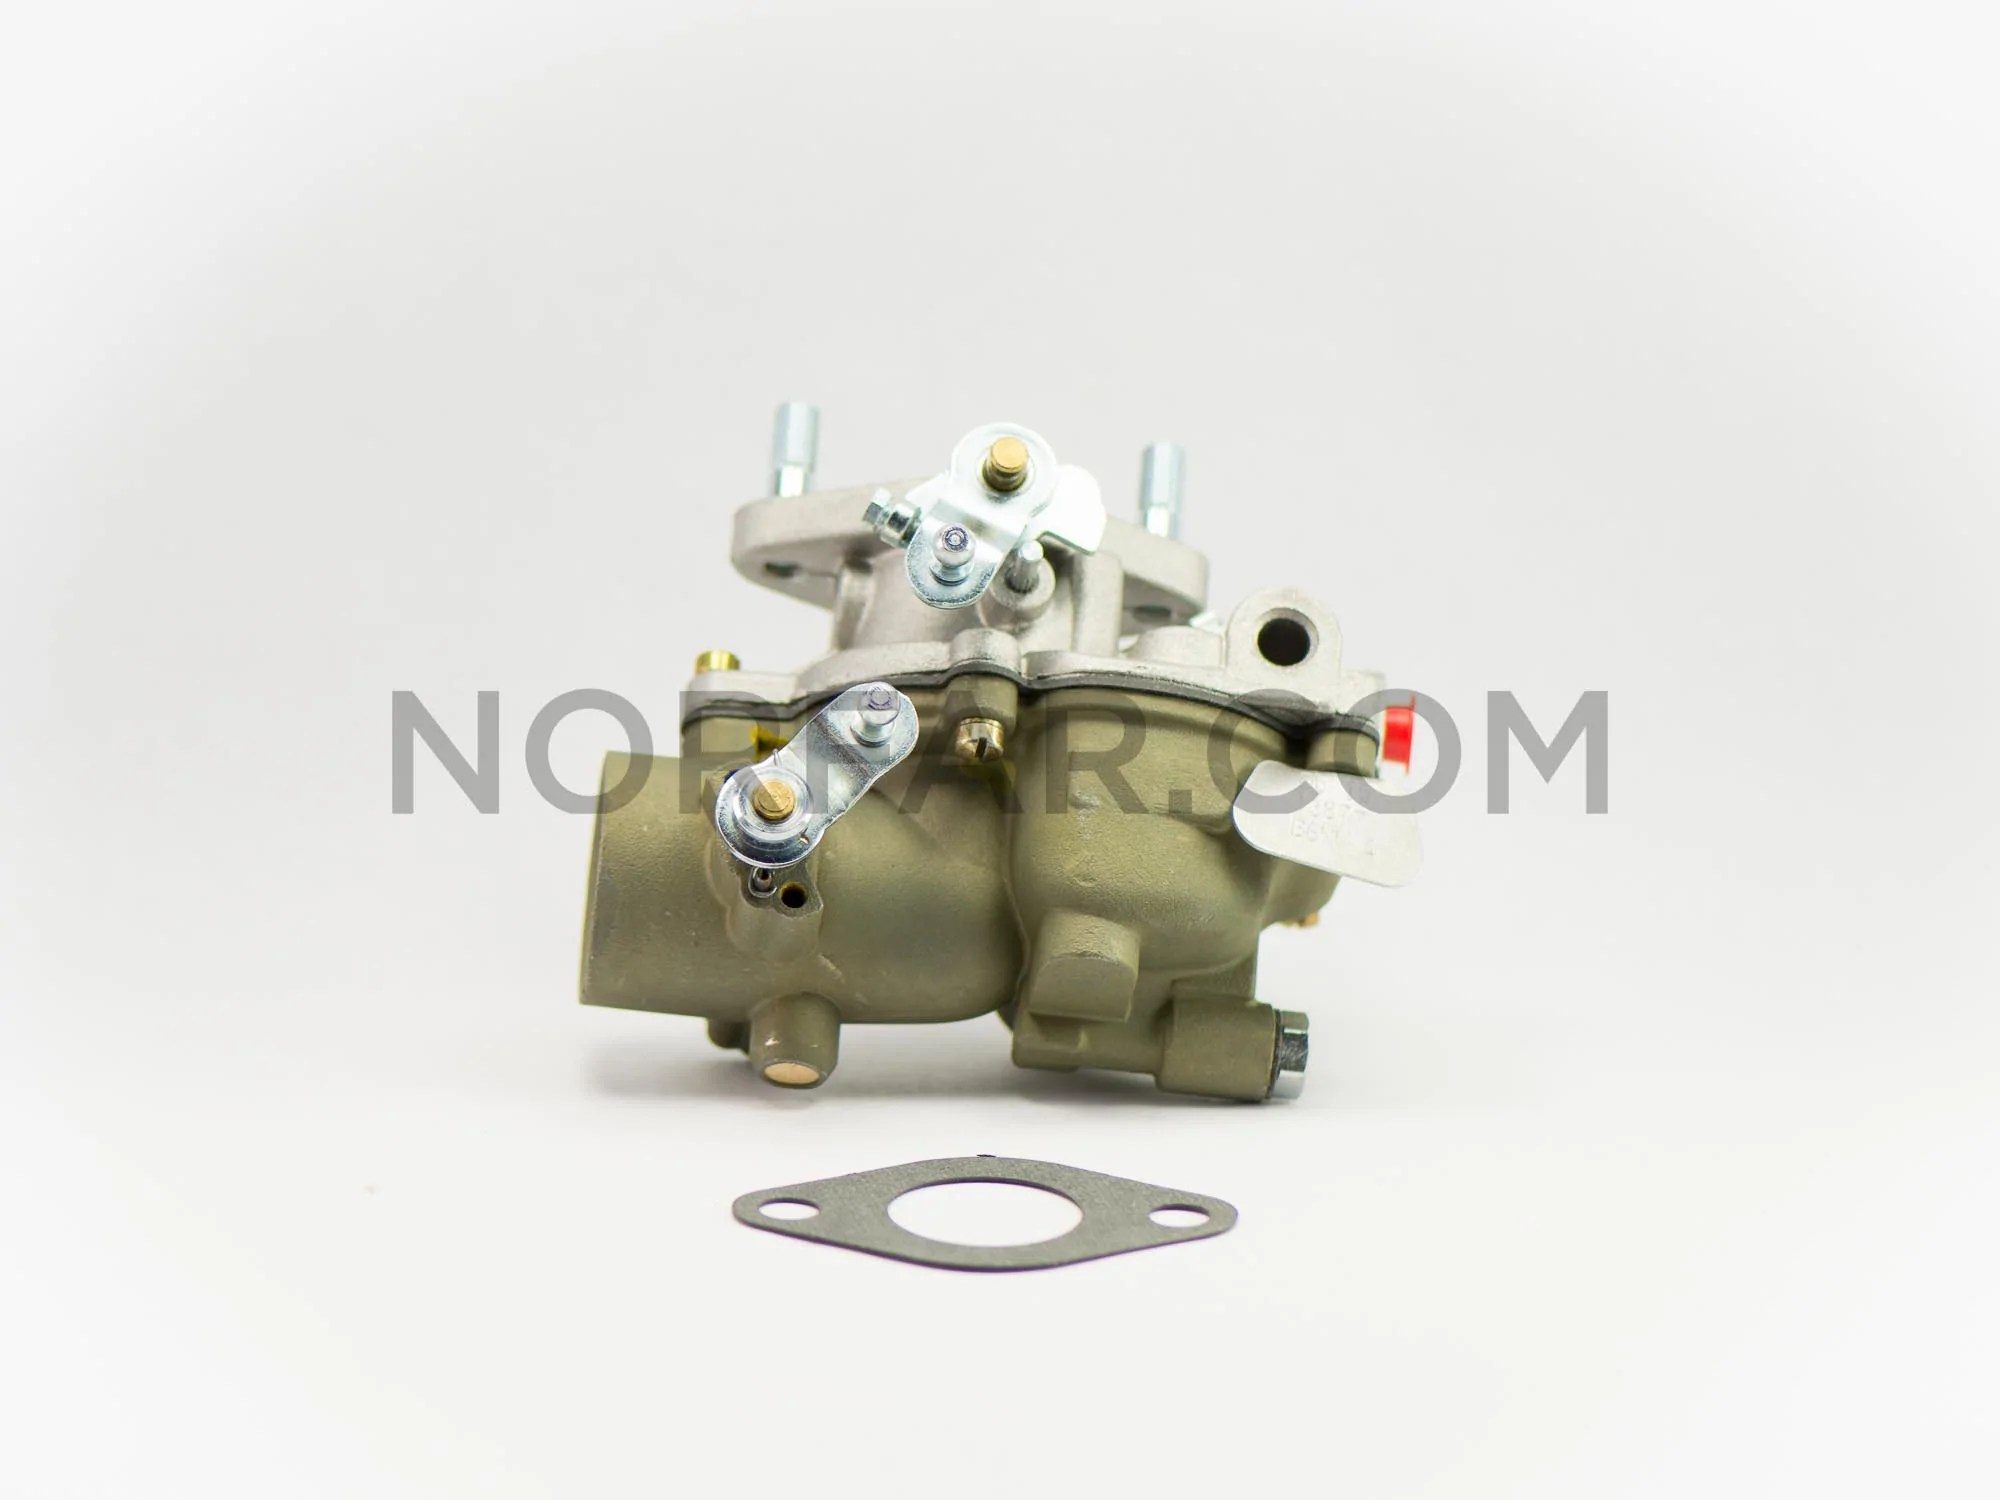 small resolution of zenith 13877 carburetor ford b6nn9510 a norfar com farmall super h carburetor diagram zenith 13877 carburetor